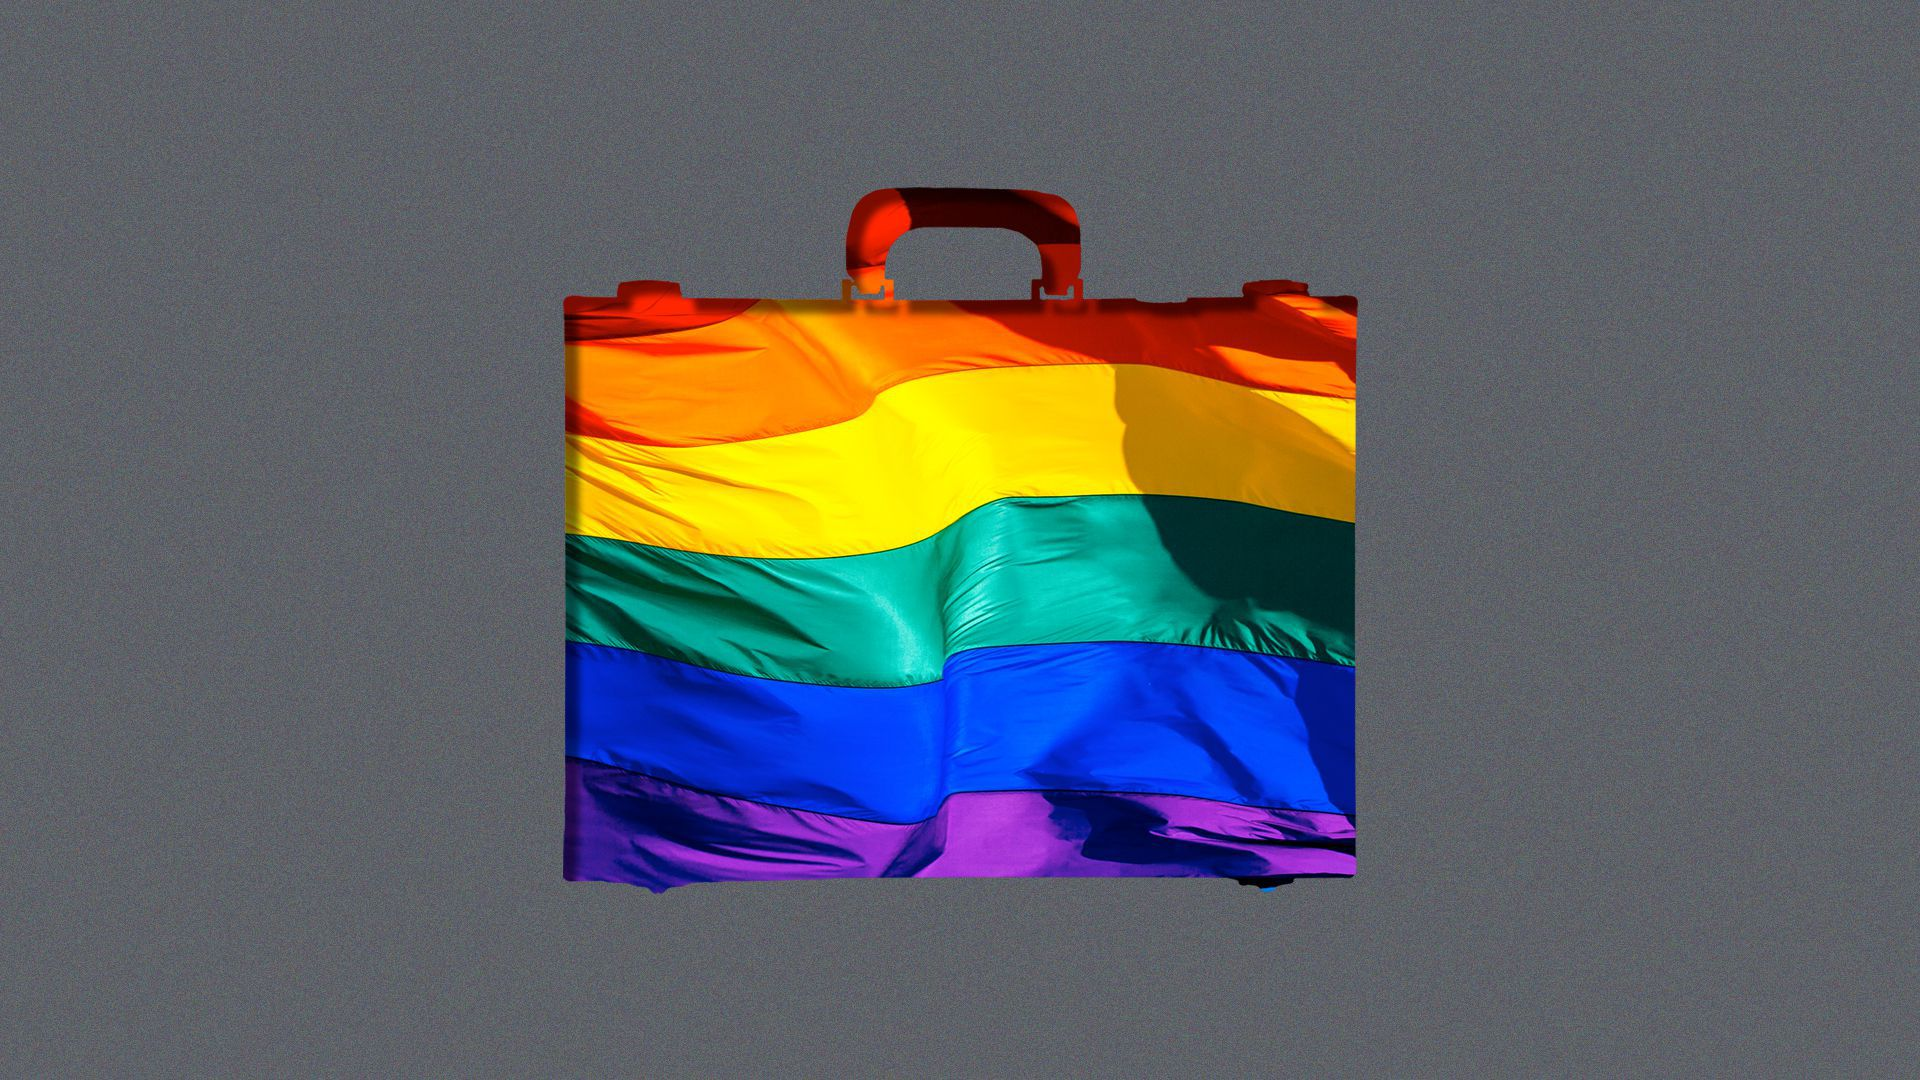 Illustration of the shape of a briefcase revealing a rainbow flag.